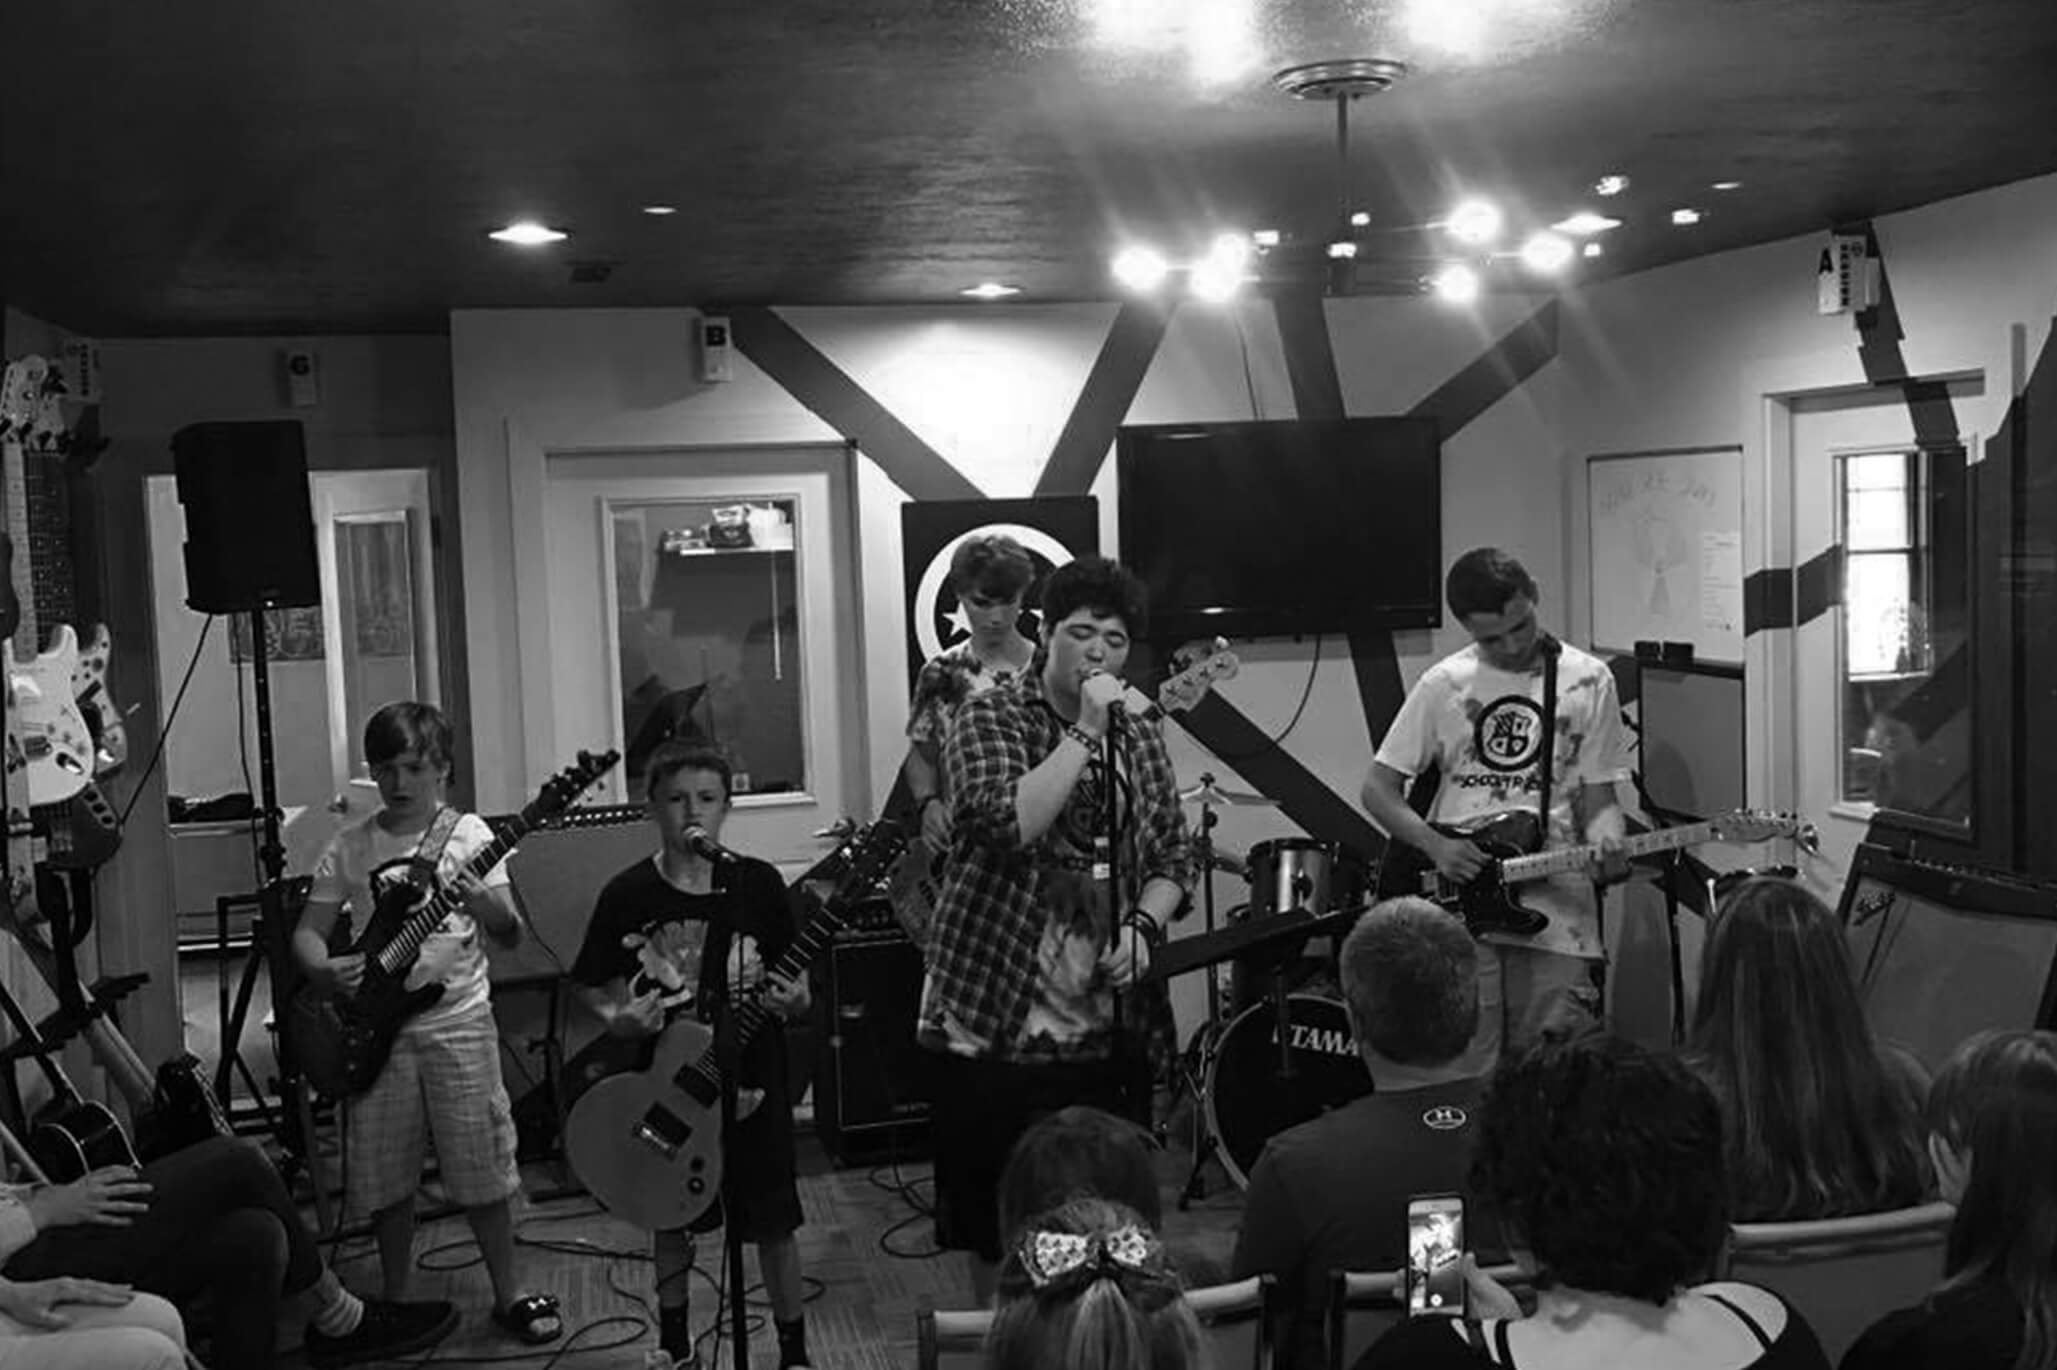 Performance Camp - Rock and Roll Boot Camp July 8-12, 2018 Ages 12-17